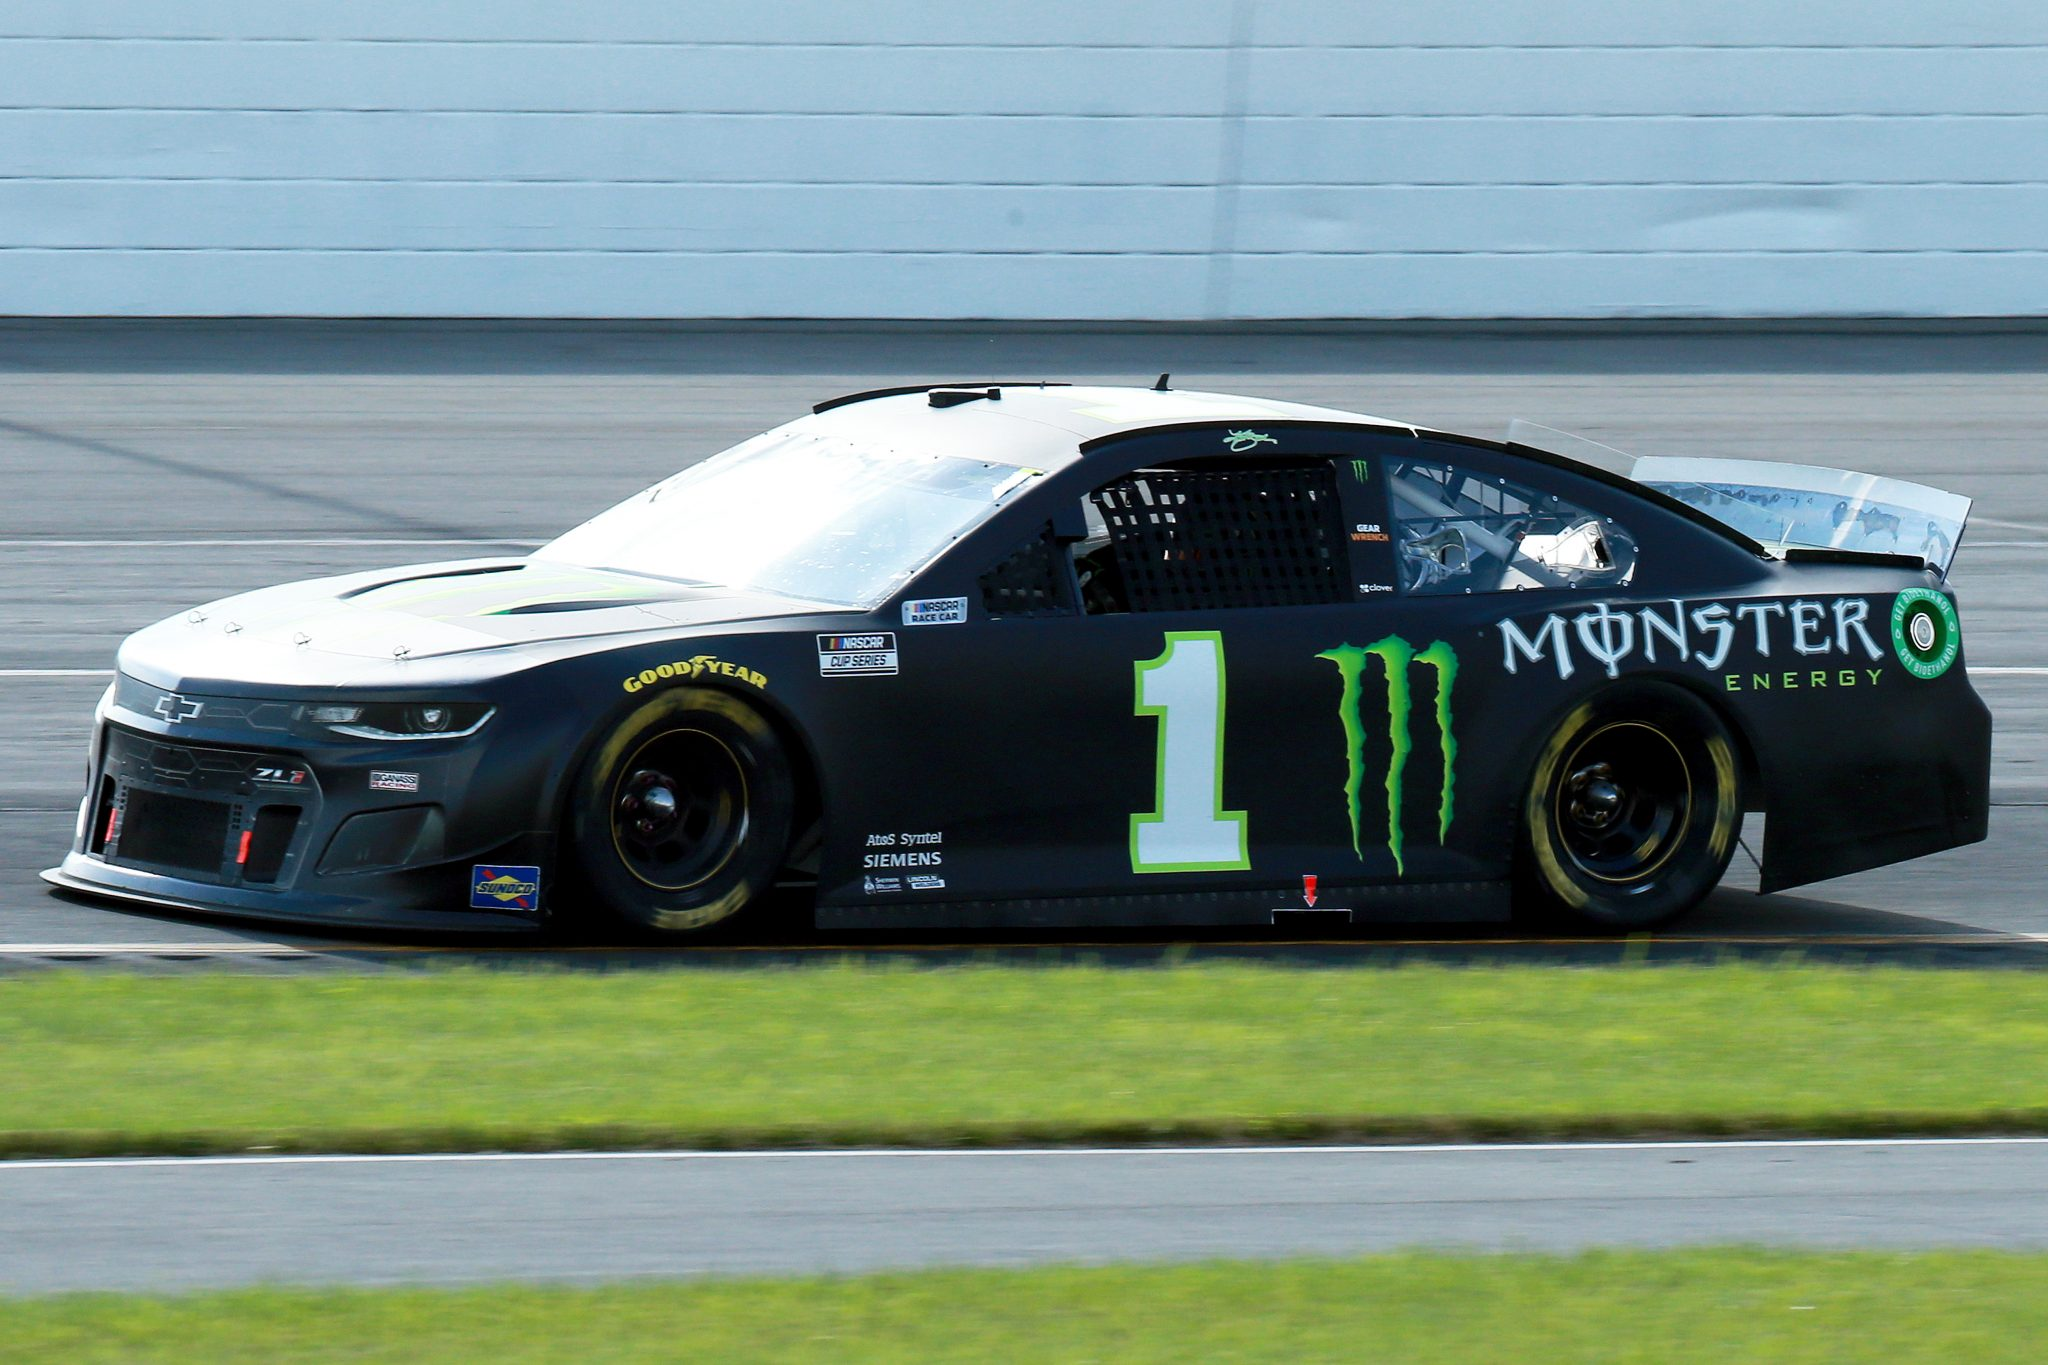 LONG POND, PENNSYLVANIA - JUNE 27: Kurt Busch, driver of the #1 Monster Energy Chevrolet, drives during the NASCAR Cup Series Explore the Pocono Mountains 350 at Pocono Raceway on June 27, 2021 in Long Pond, Pennsylvania. (Photo by Sean Gardner/Getty Images) | Getty Images